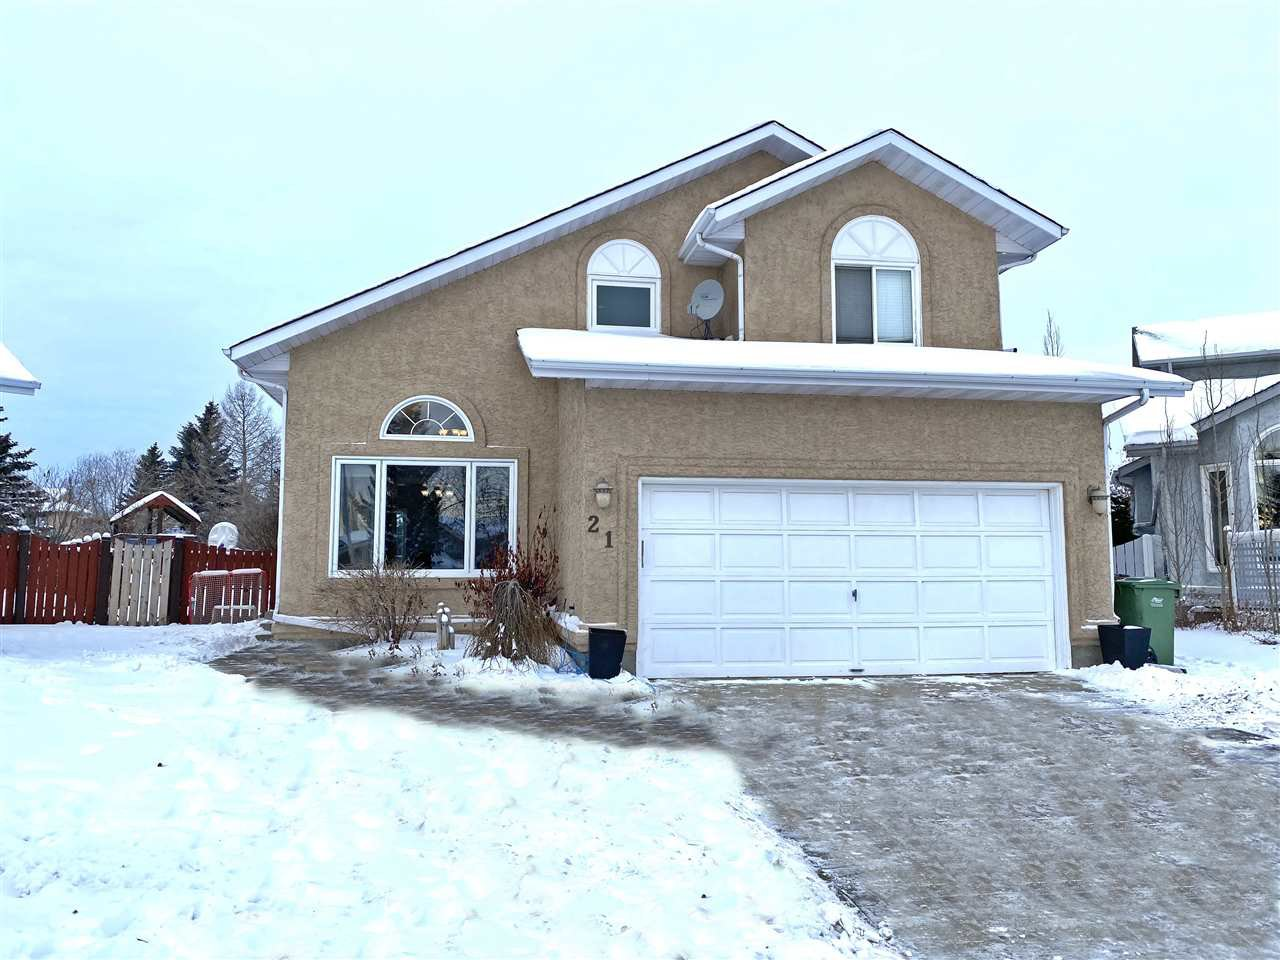 Main Photo: 21 DONAHUE Close: St. Albert House for sale : MLS®# E4184694